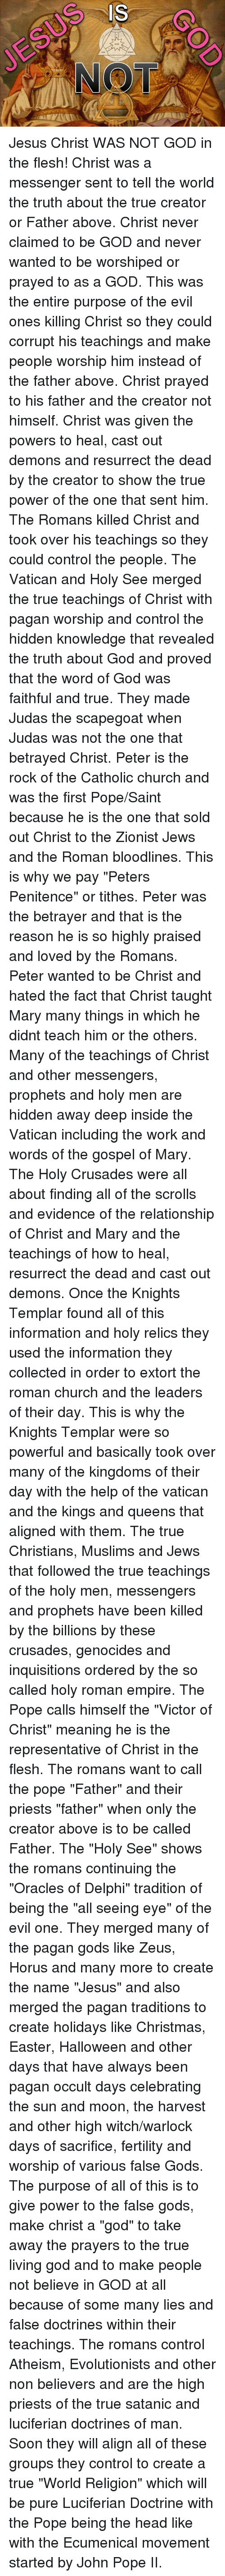 """holy roman empire: NOT Jesus Christ WAS NOT GOD in the flesh! Christ was a messenger sent to tell the world the truth about the true creator or Father above. Christ never claimed to be GOD and never wanted to be worshiped or prayed to as a GOD. This was the entire purpose of the evil ones killing Christ so they could corrupt his teachings and make people worship him instead of the father above.  Christ prayed to his father and the creator not himself. Christ was given the powers to heal, cast out demons and resurrect the dead by the creator to show the true power of the one that sent him. The Romans killed Christ and took over his teachings so they could control the people. The Vatican and Holy See merged the true teachings of Christ with pagan worship and control the hidden knowledge that revealed the truth about God and proved that the word of God was faithful and true.   They made Judas the scapegoat when Judas was not the one that betrayed Christ. Peter is the rock of the Catholic church and was the first Pope/Saint because he is the one that sold out Christ to the Zionist Jews and the Roman bloodlines. This is why we pay """"Peters Penitence"""" or tithes. Peter was the betrayer and that is the reason he is so highly praised and loved by the Romans.   Peter wanted to be Christ and hated the fact that Christ taught Mary many things in which he didnt teach him or the others. Many of the teachings of Christ and other messengers, prophets and holy men are hidden away deep inside the Vatican including the work and words of the gospel of Mary. The Holy Crusades were all about finding all of the scrolls and evidence of the relationship of Christ and Mary and the teachings of how to heal, resurrect the dead and cast out demons. Once the Knights Templar found all of this information and holy relics they used the information they collected in order to extort the roman church and the leaders of their day. This is why the Knights Templar were so powerful and basically took over """